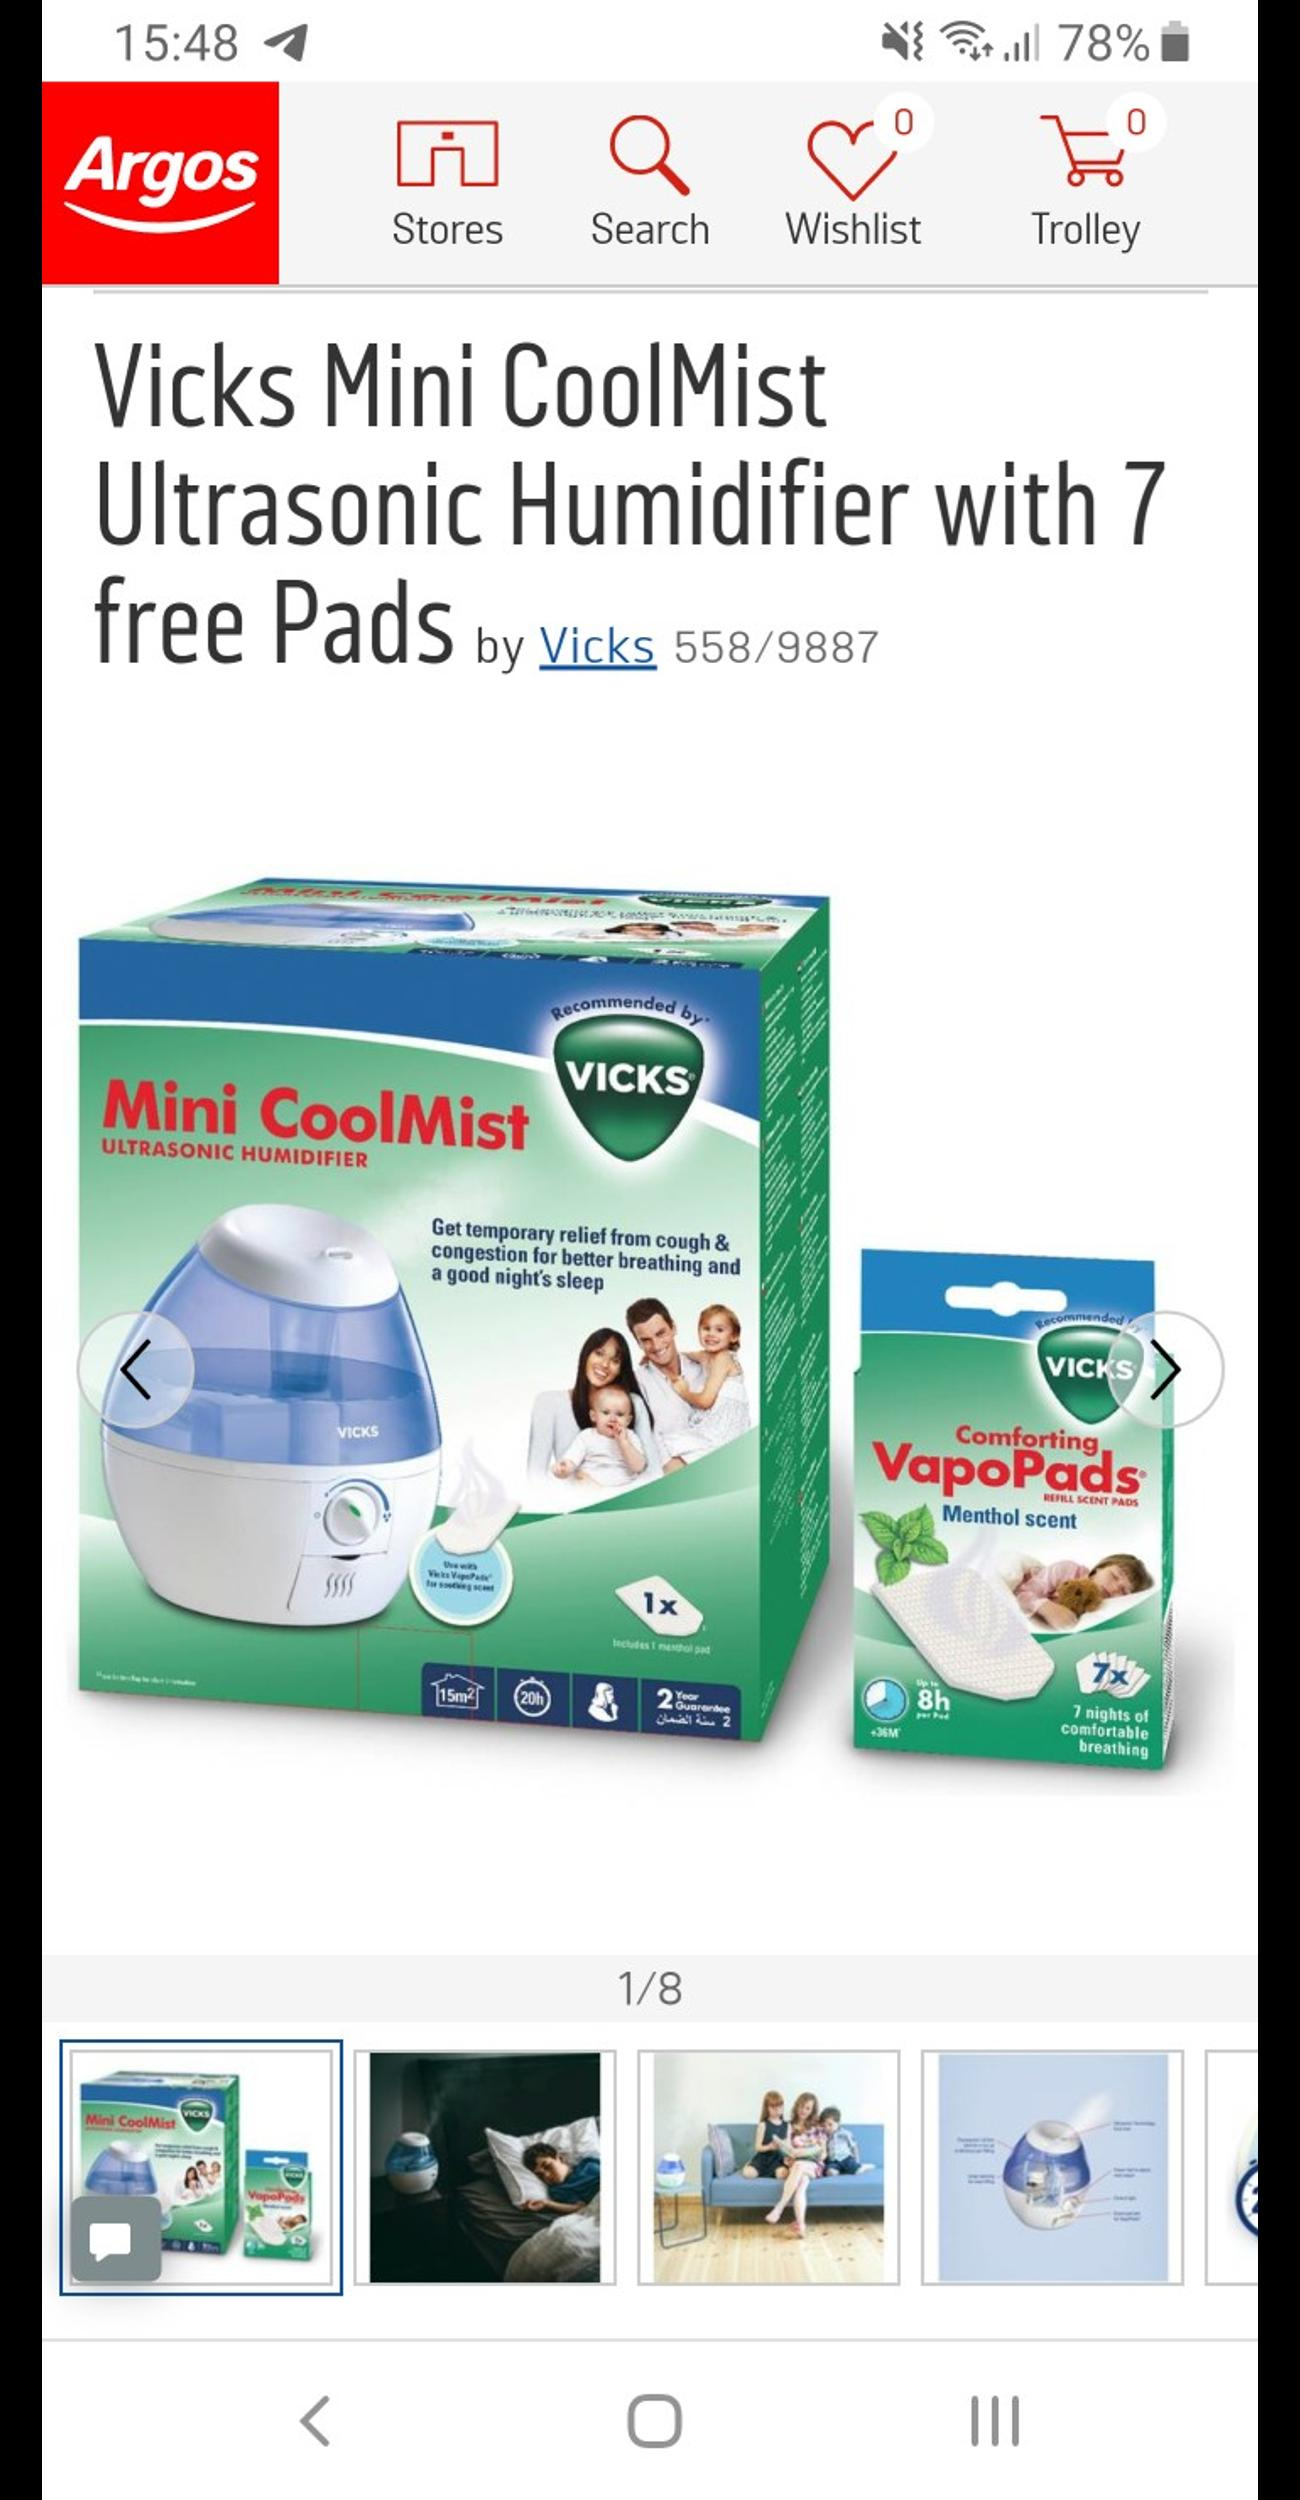 NEW Humidifier VICKS in E15 London for £20.00 for sale | Shpock